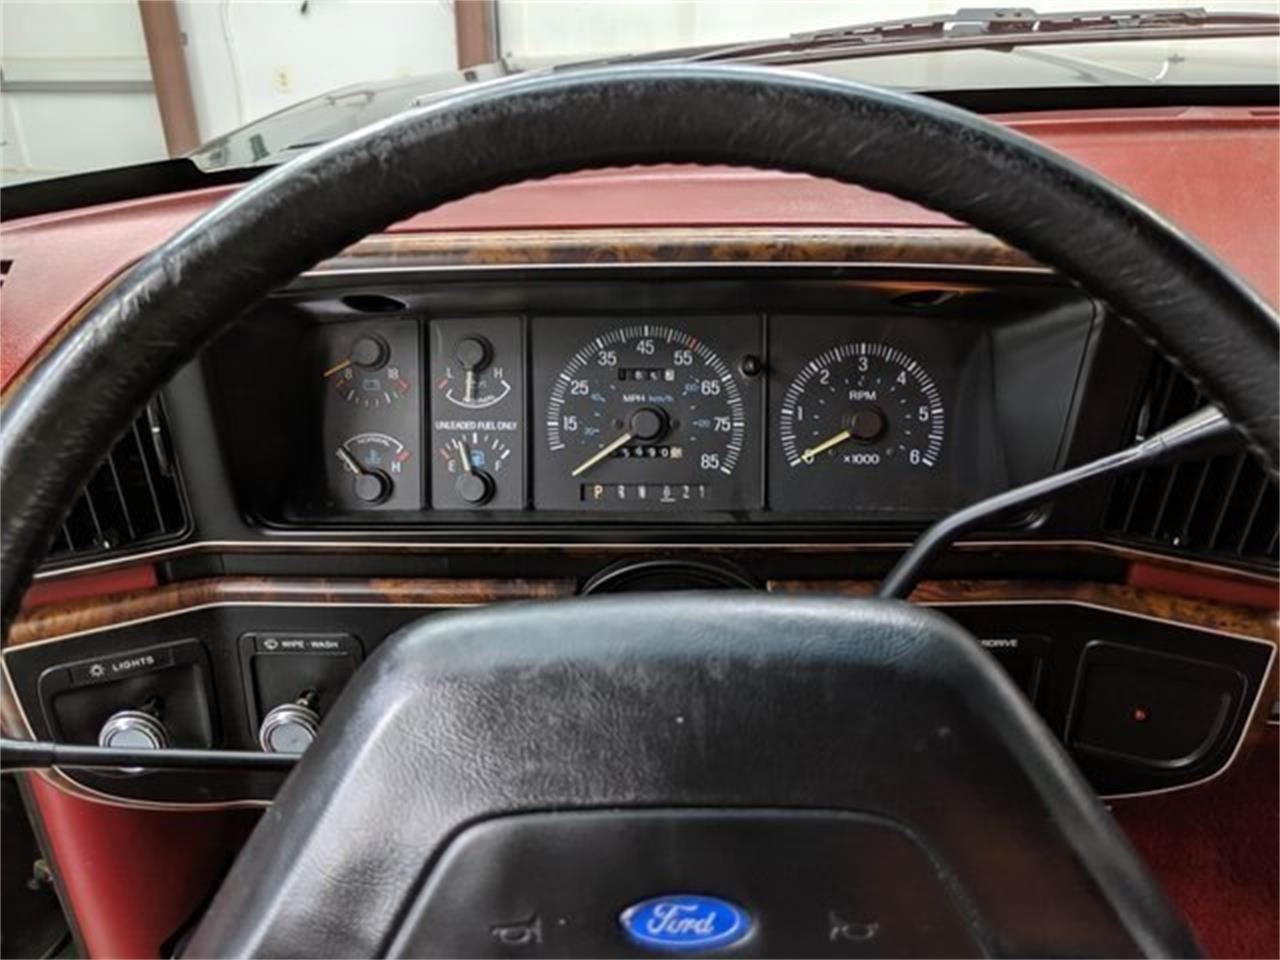 1990 Ford F350 for sale in Sioux Falls, SD – photo 35